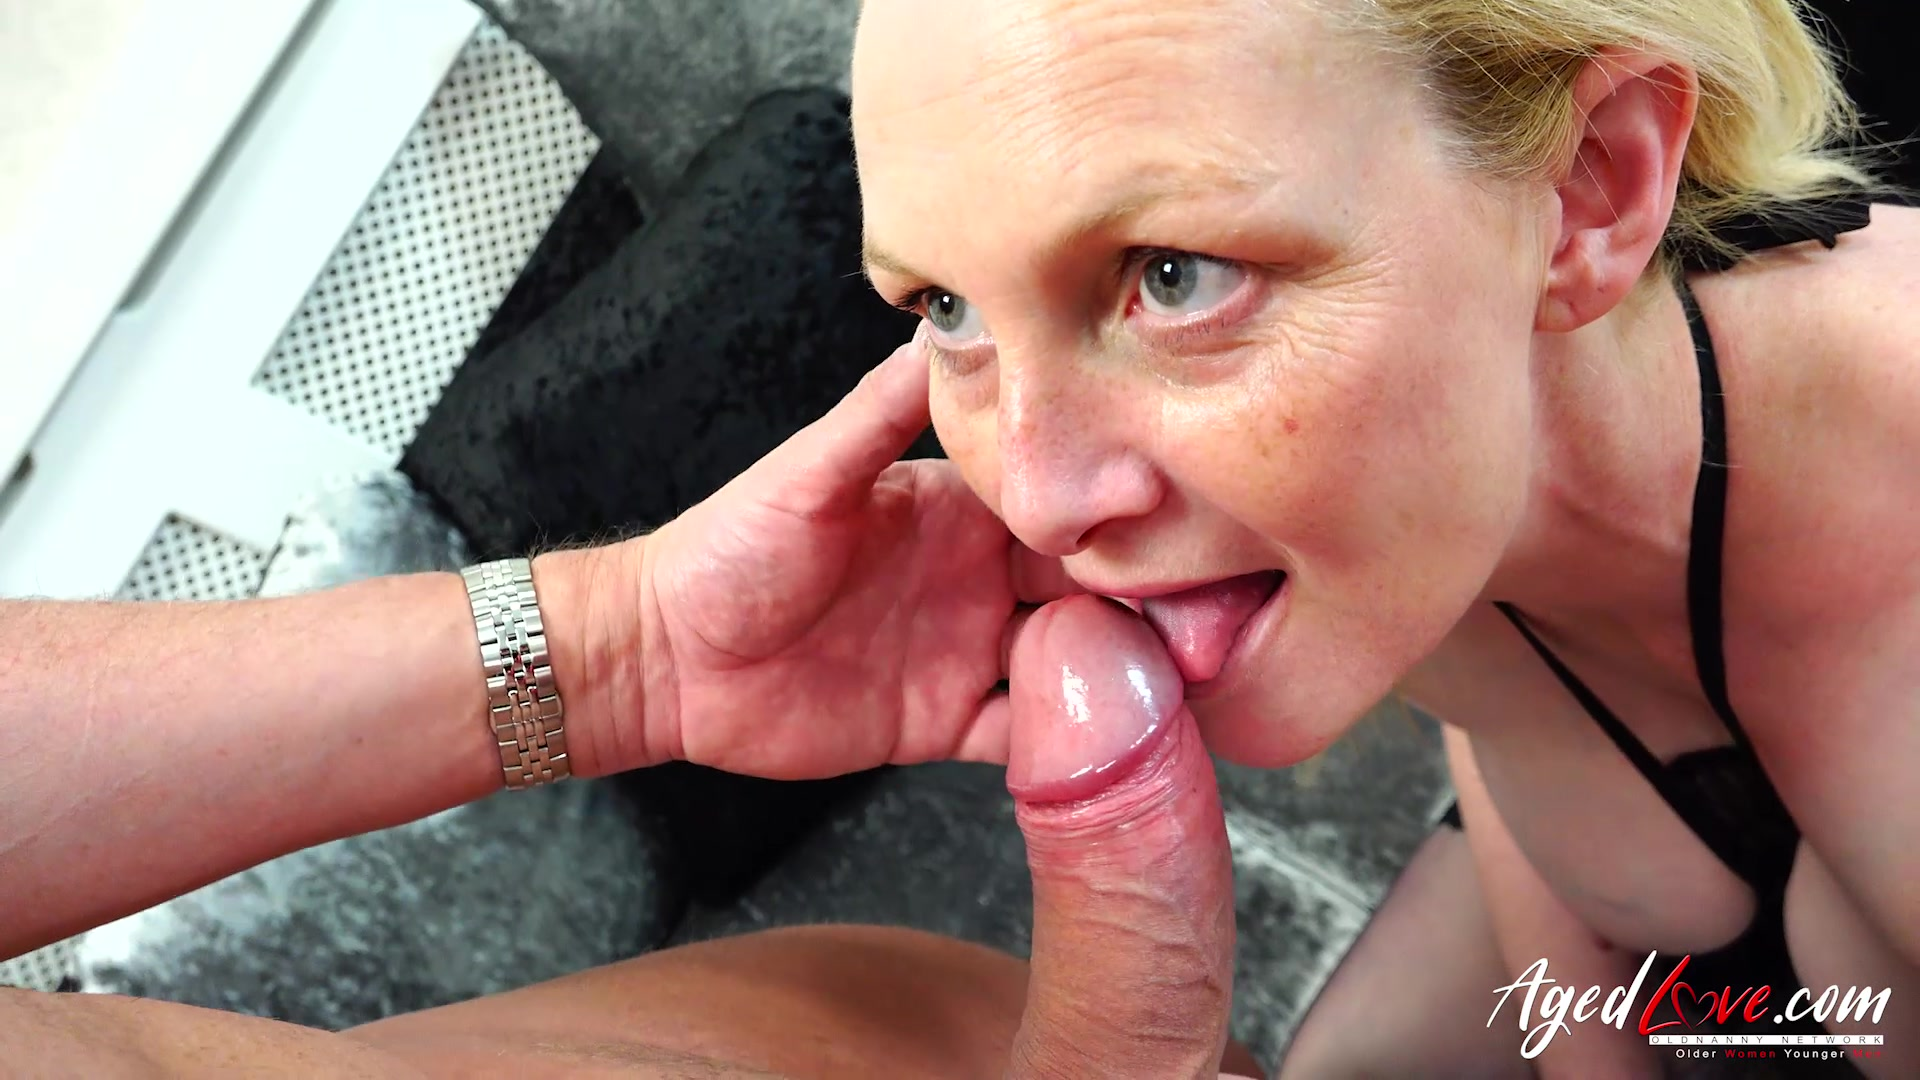 Hot nacked man and women sex